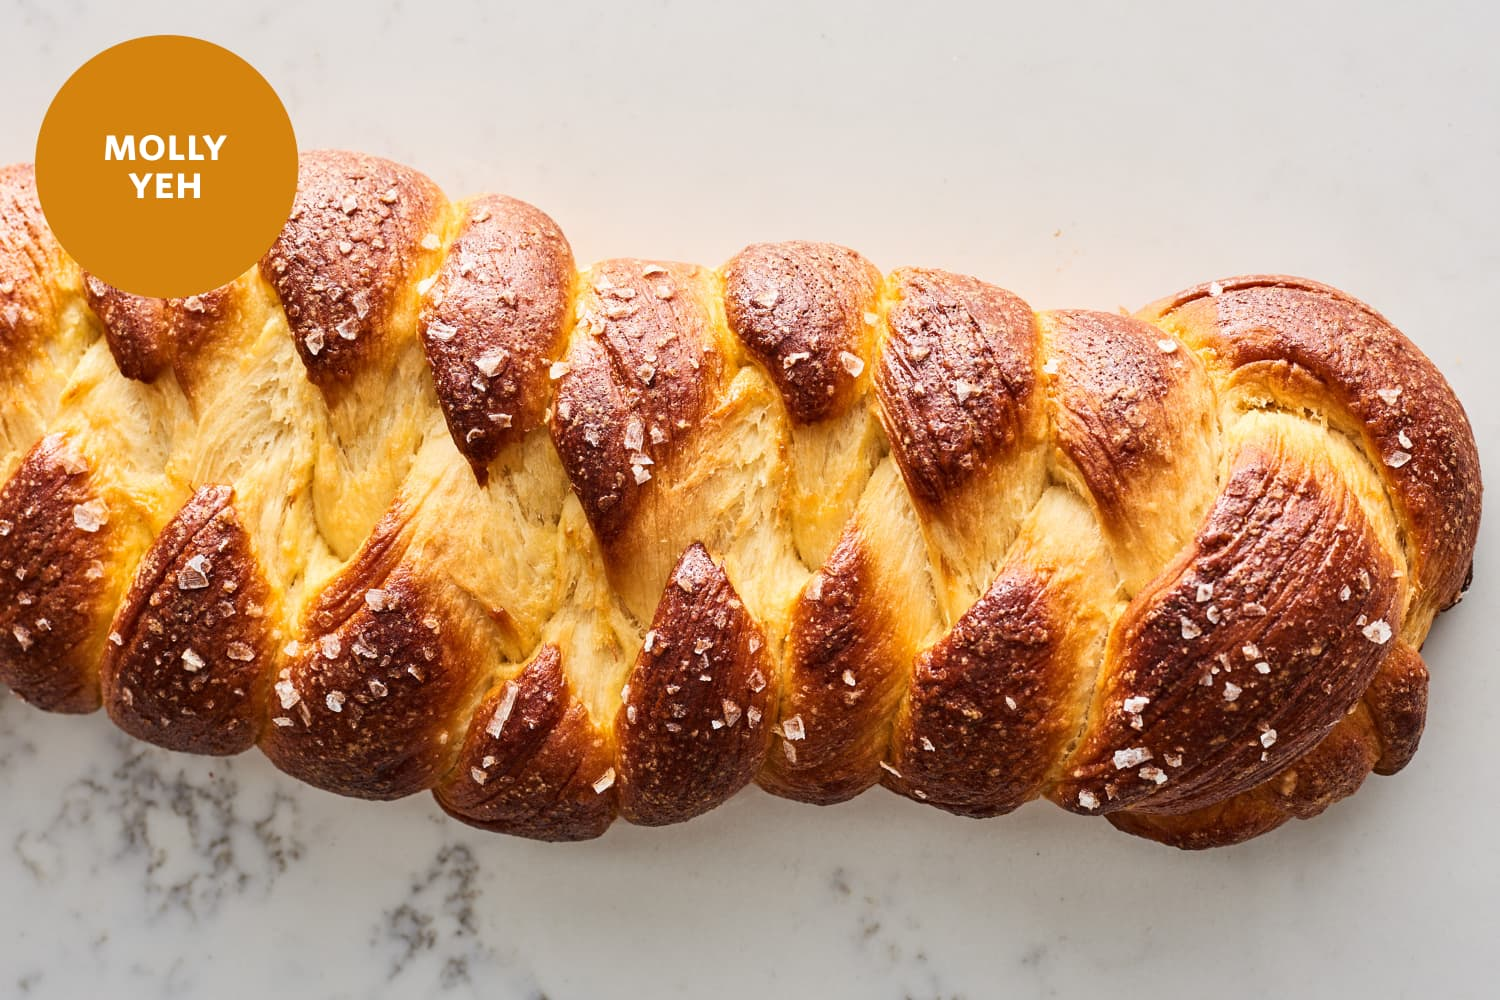 I Tried Molly Yeh's Classic Challah Recipe (& Here's What I Thought)